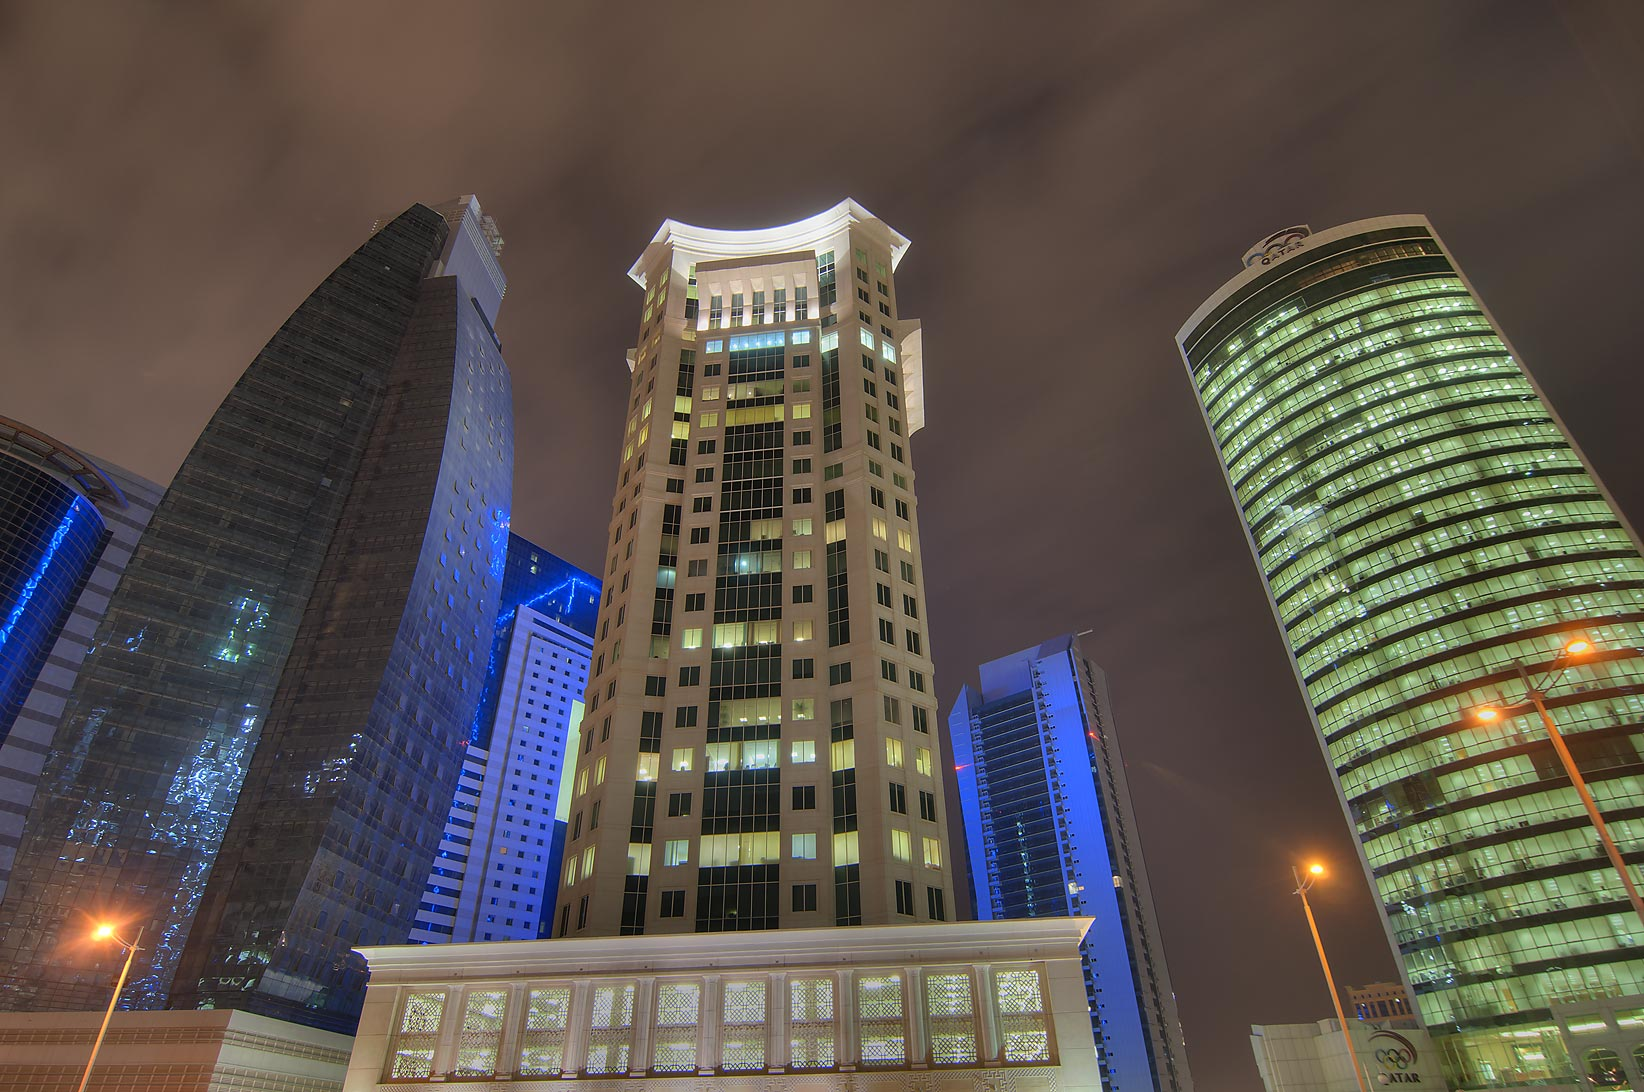 Al Huda Engineering Works, Al Qassar and Olympic towers in West Bay. Doha, Qatar